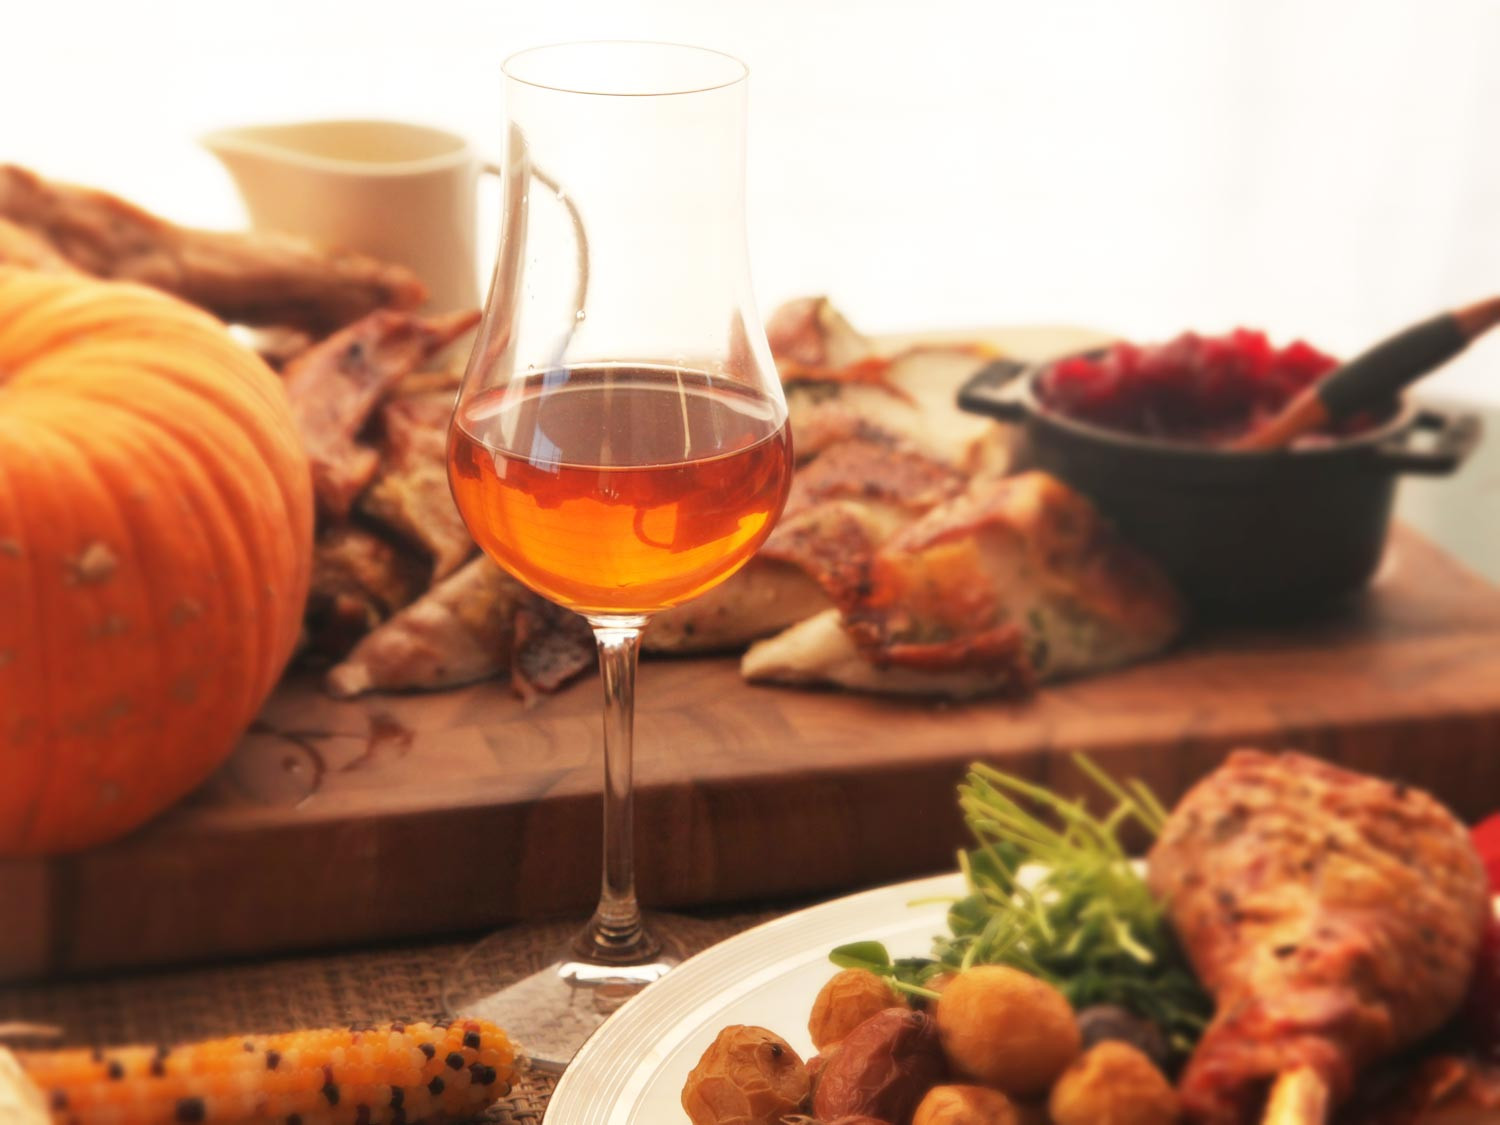 Wine For Thanksgiving Dinner  All the Recipes You Need for a Killer Thanksgiving Dinner